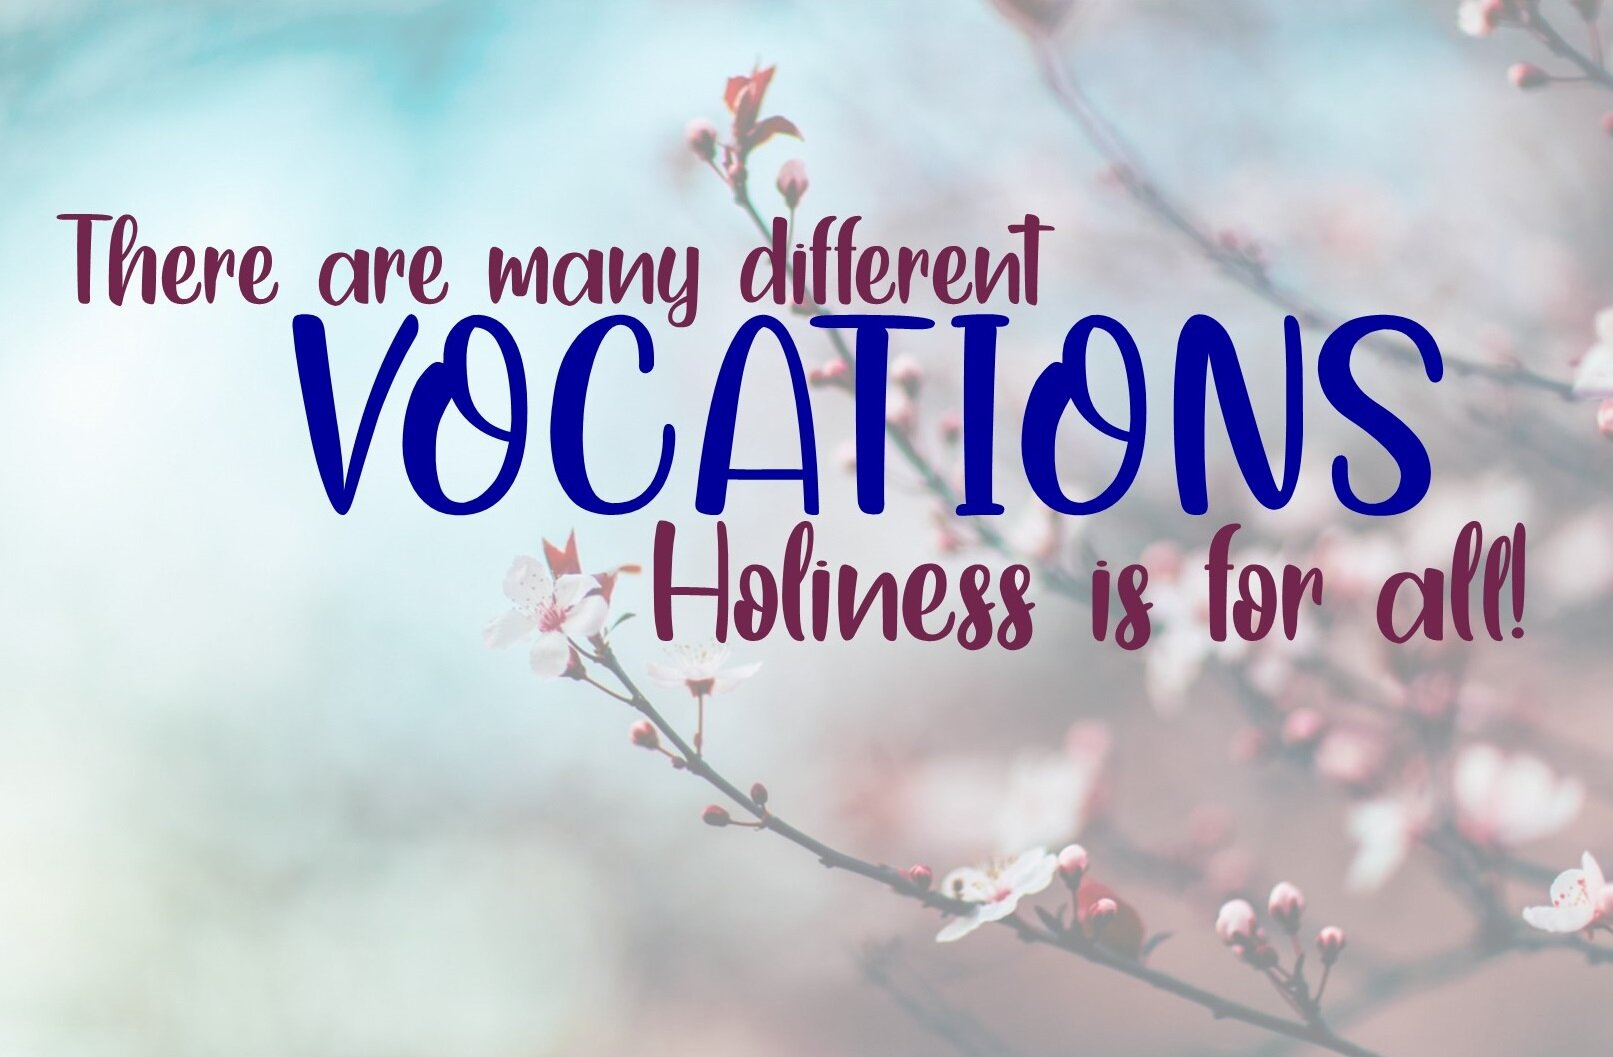 Pope Francis reminds us that holiness is for all!